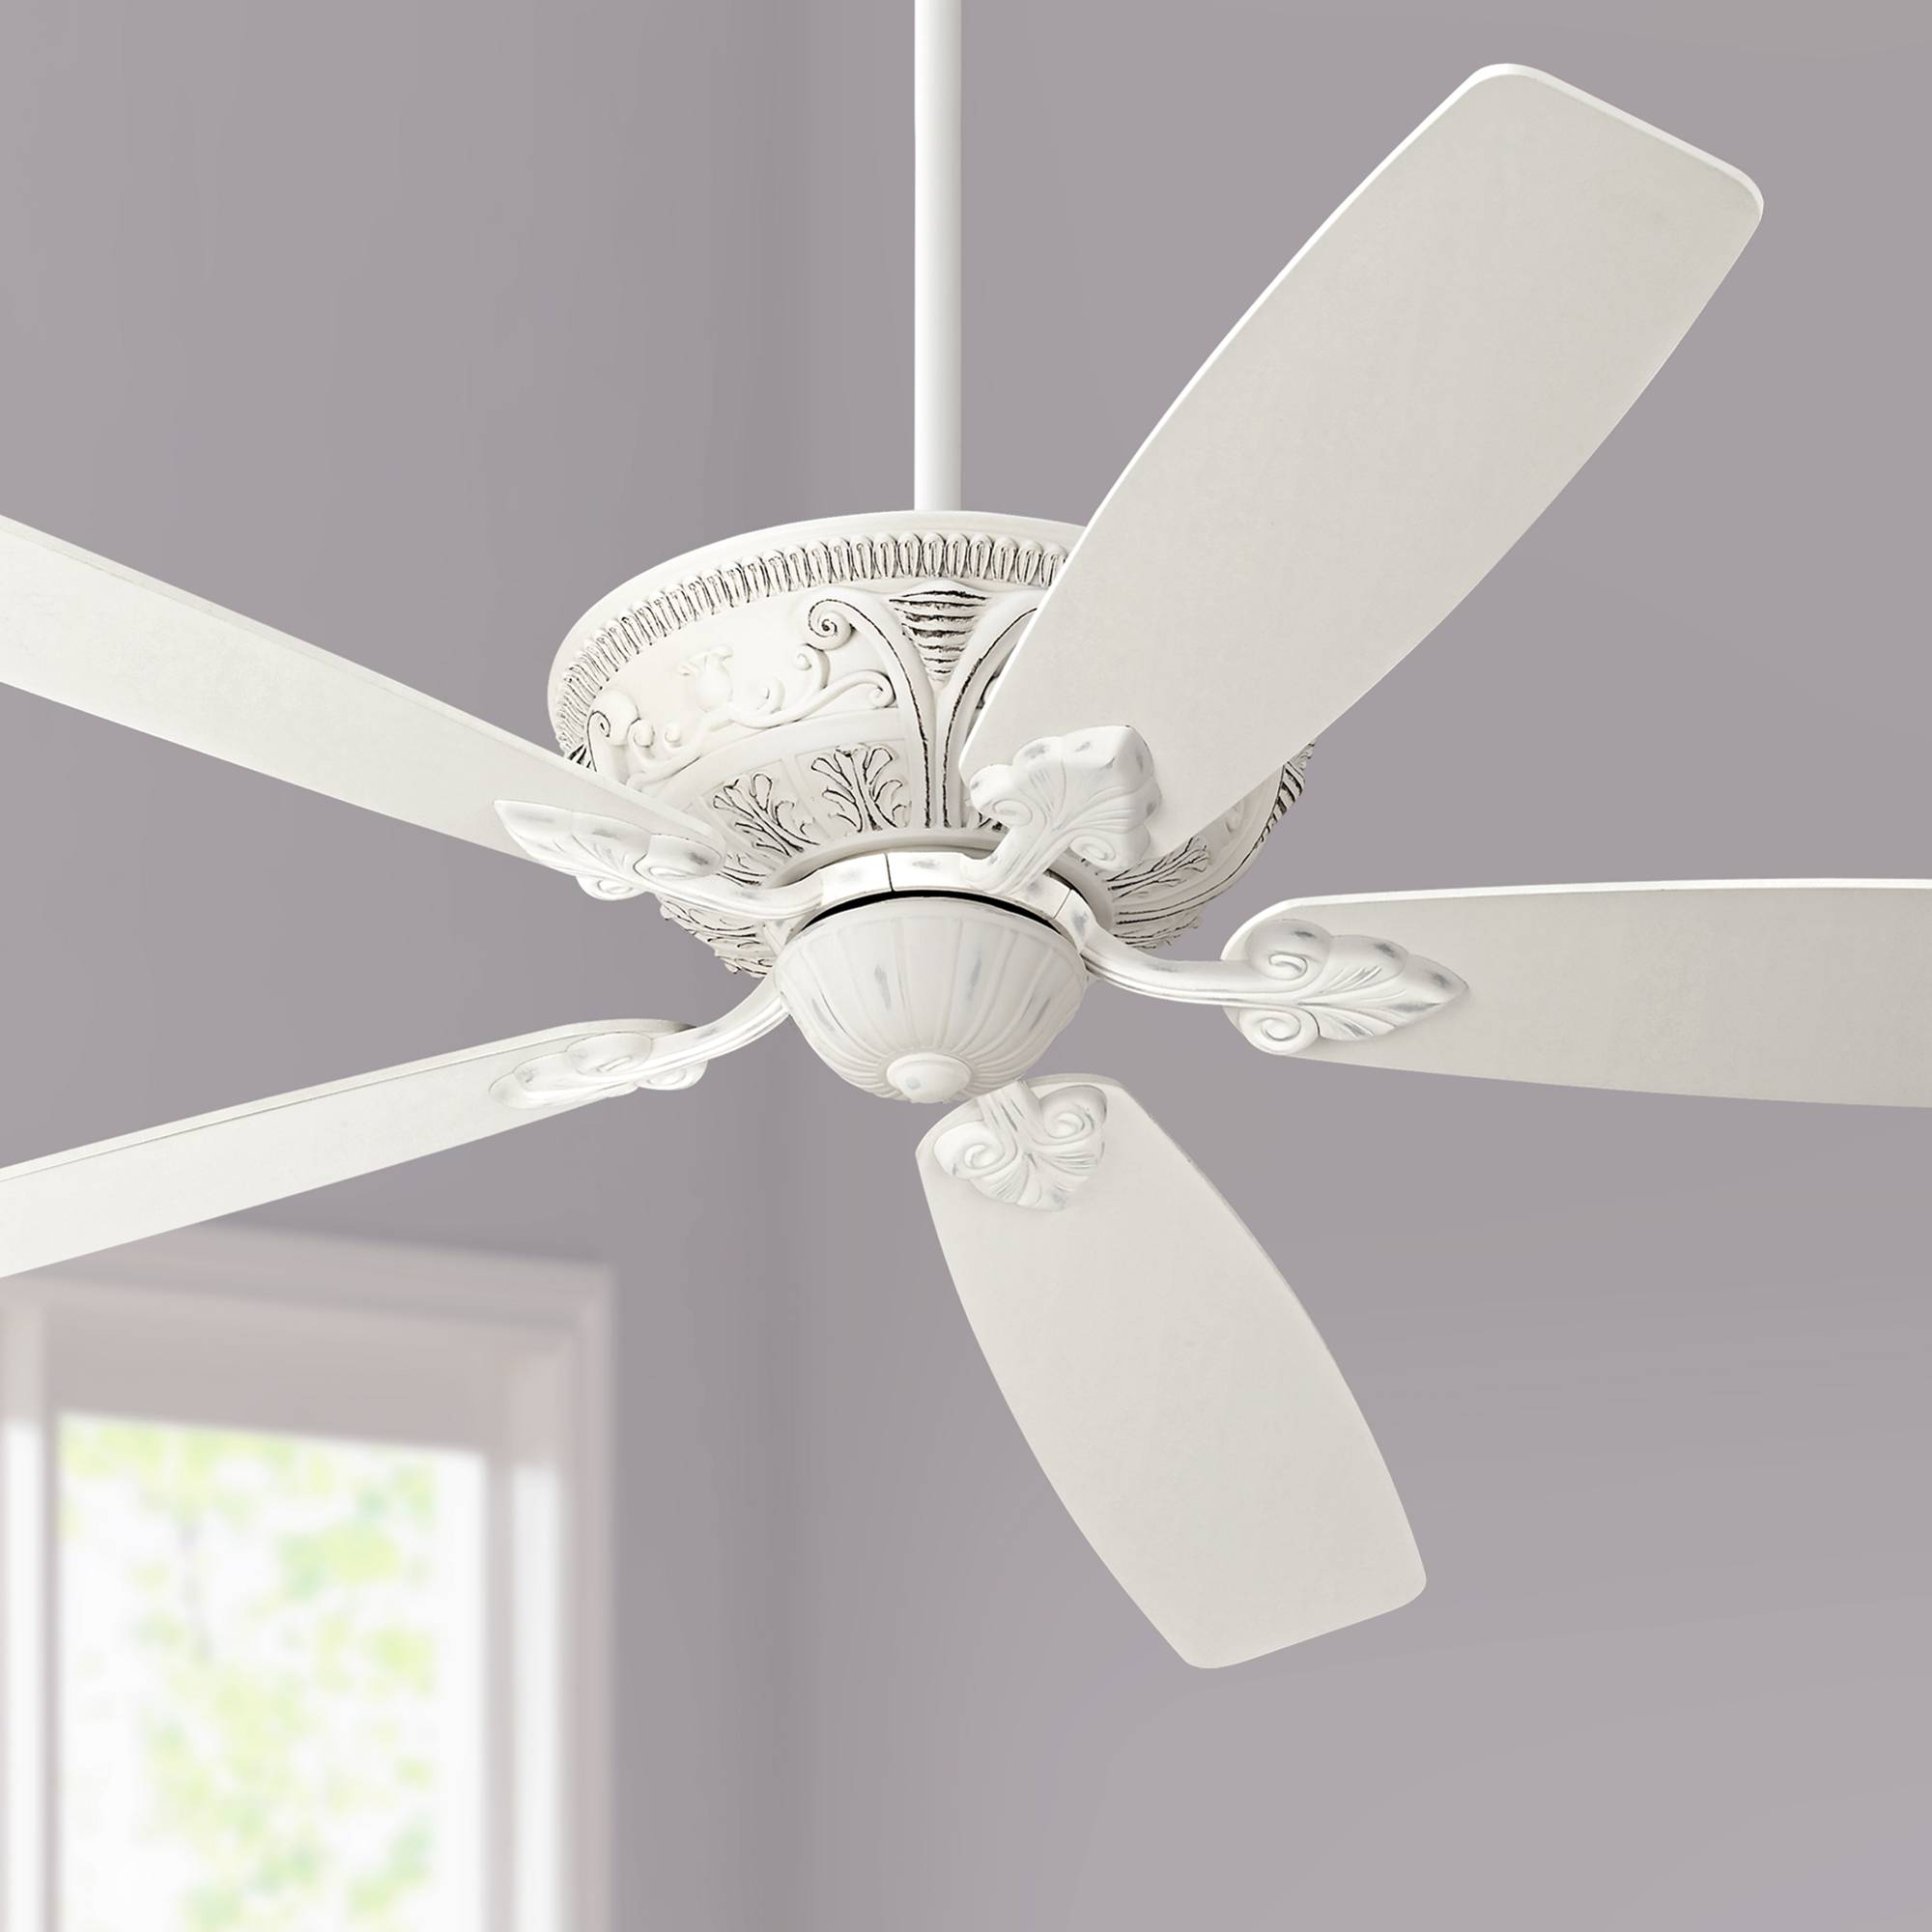 Details About 60 Shabby Chic Ceiling Fan With Light Antique White For Living Room Bedroom